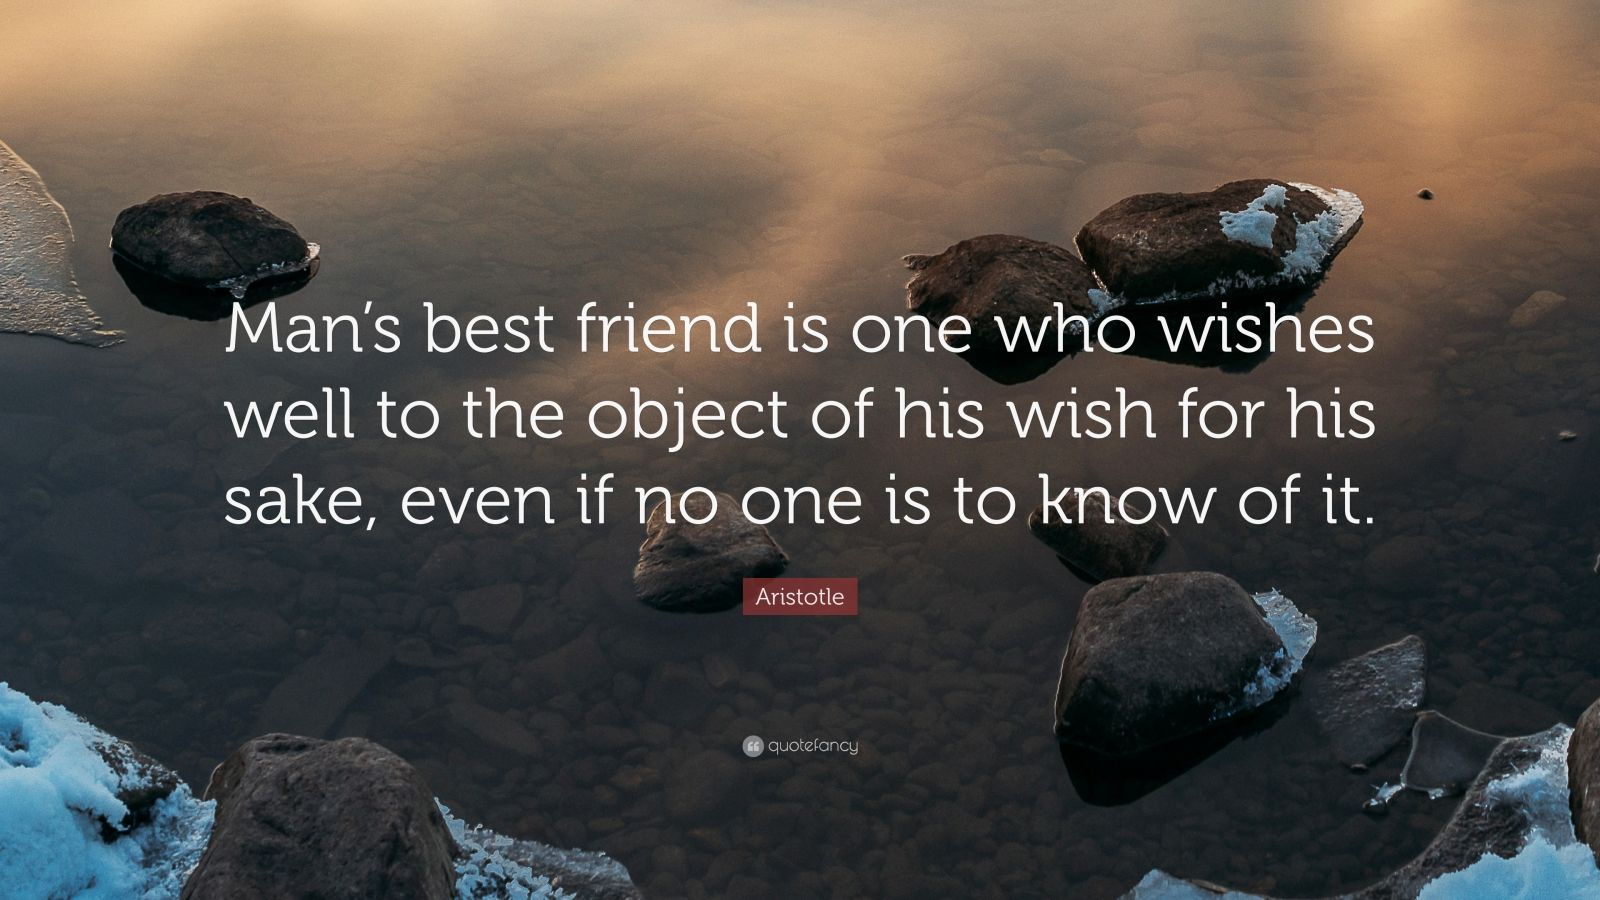 Man's best friend is one who wishes well to the object of his wish for his sake, even if no one is to know of it.